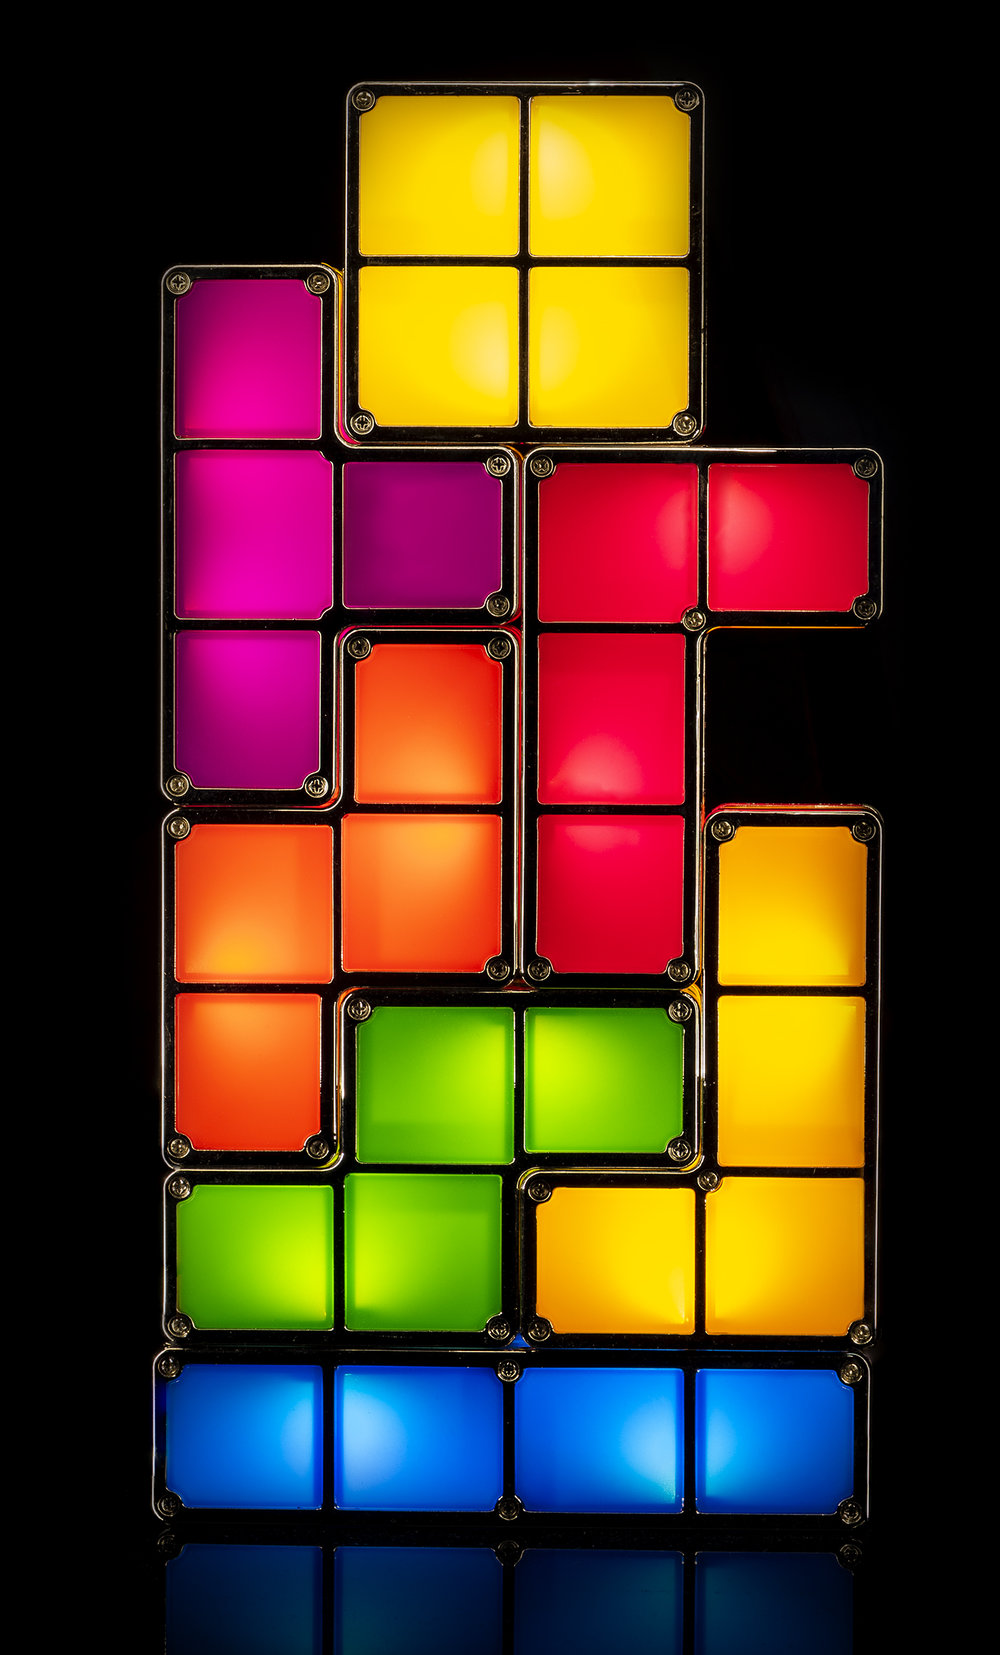 20181115_Tetris light-6.jpg